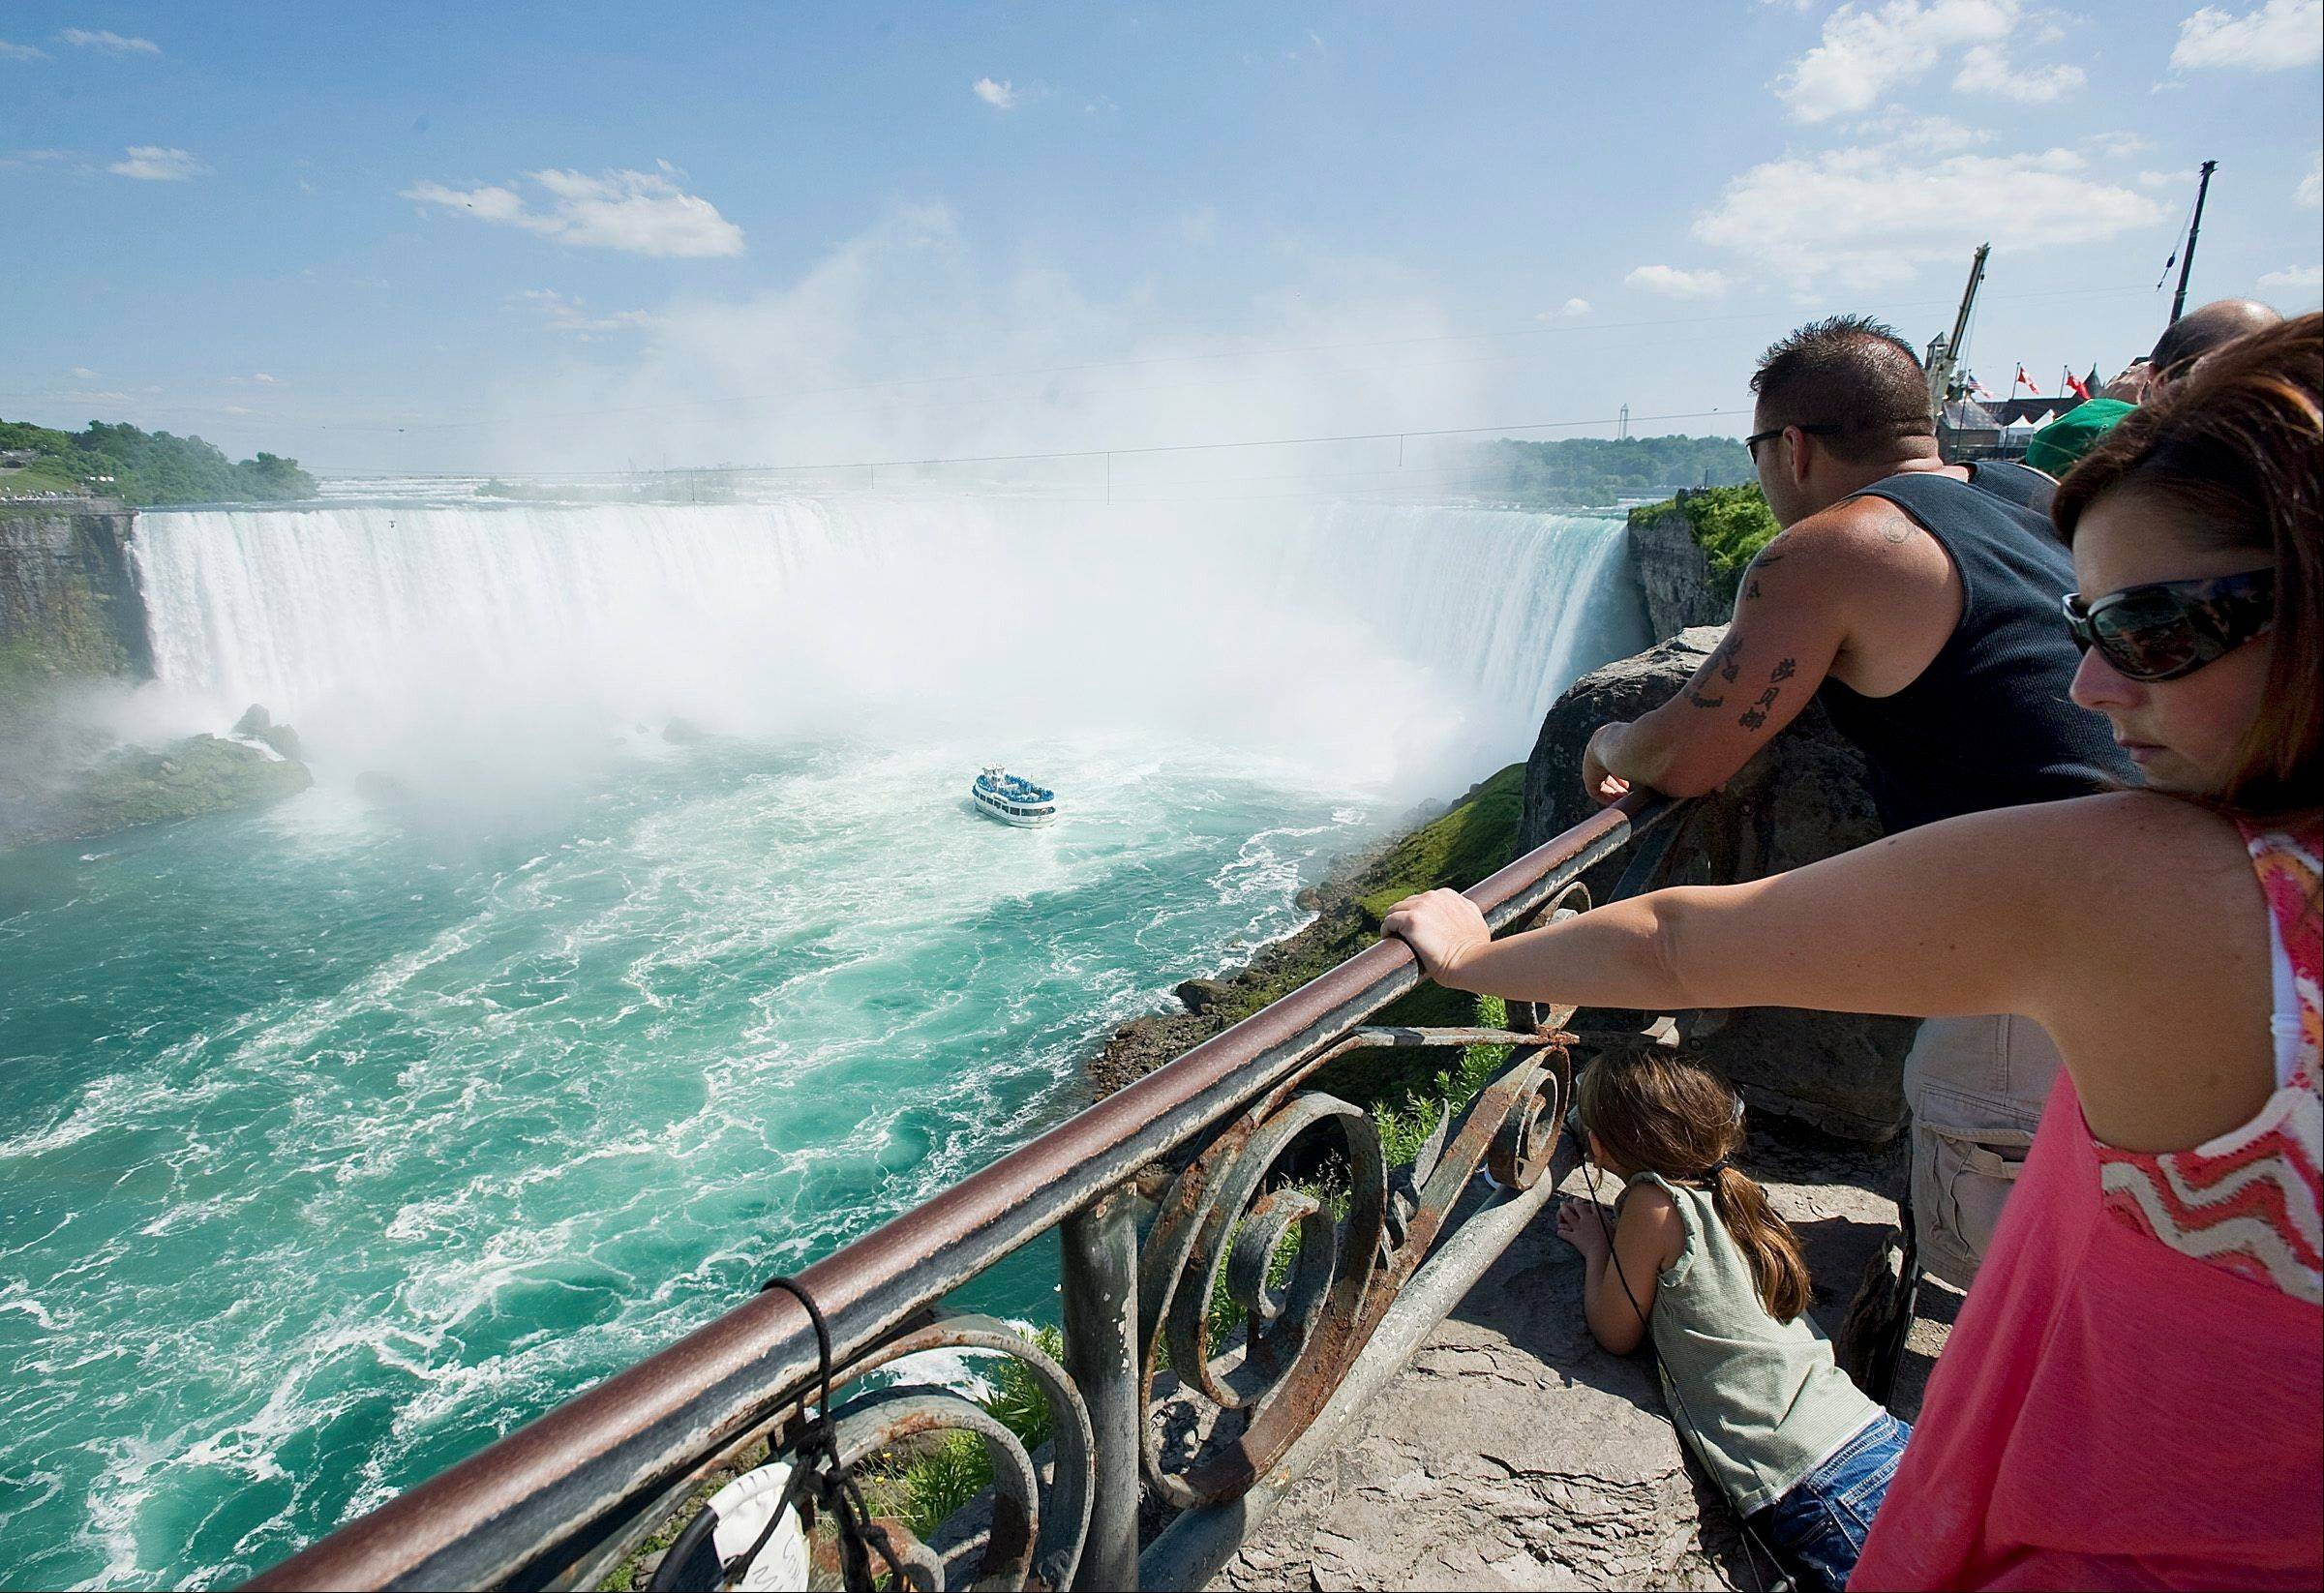 A family looks as the Maid of the Mist turns around at Niagara Falls, where Nik Wallenda will walk a 550 metre-long tightrope in Niagara Falls, Ont., on Friday, June 15, 2012.